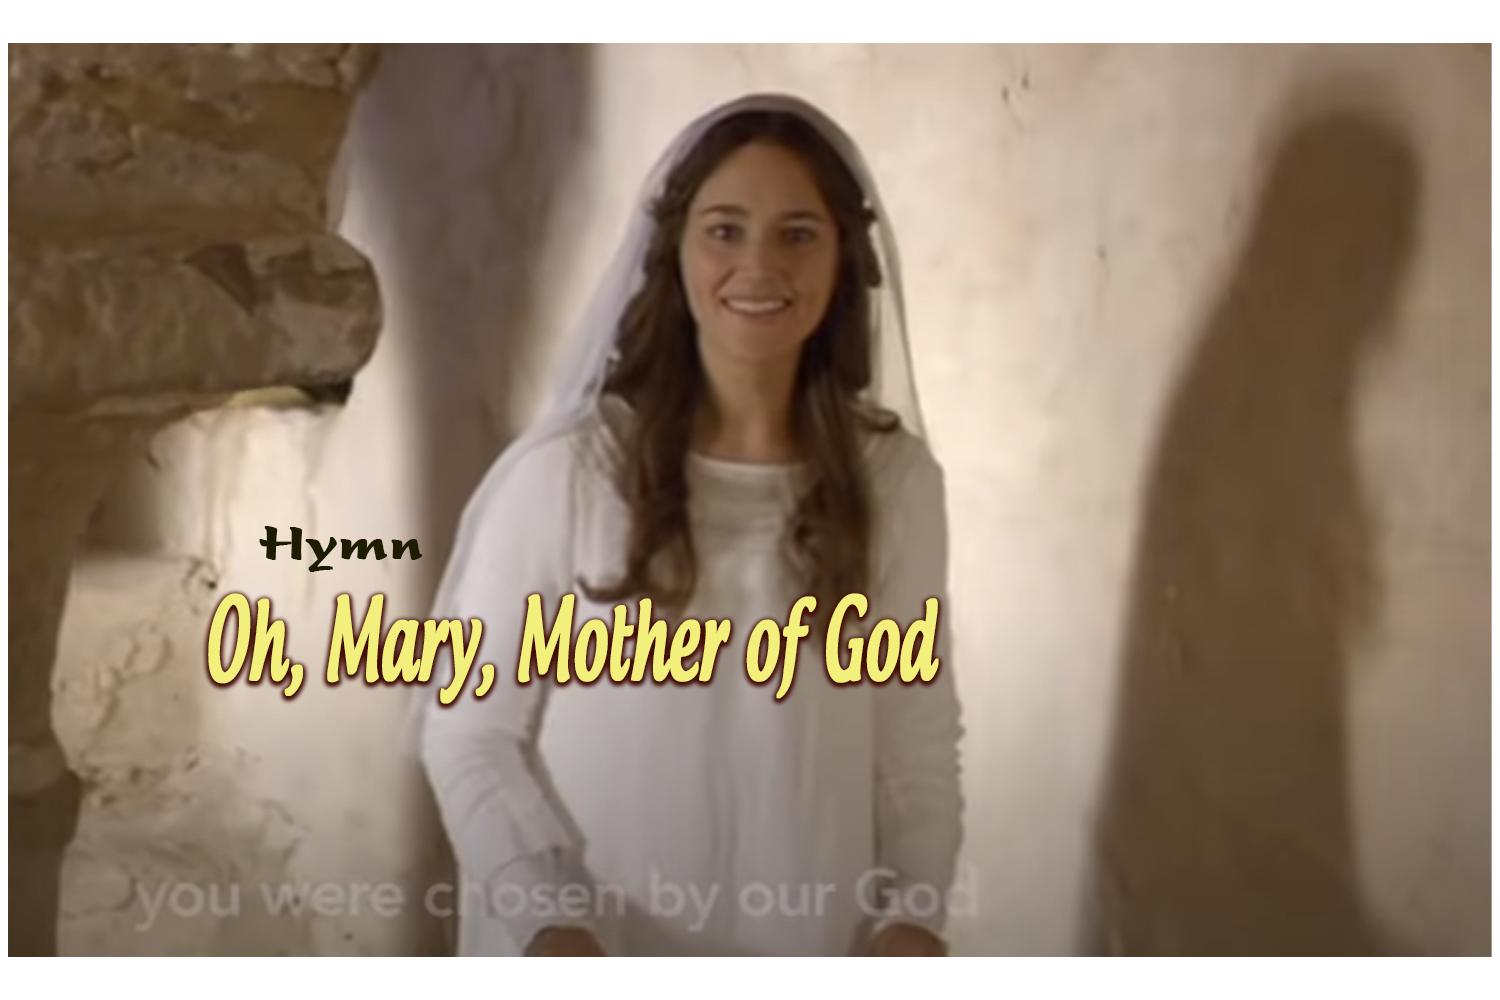 Oh Mary, Mother of God - Hymn